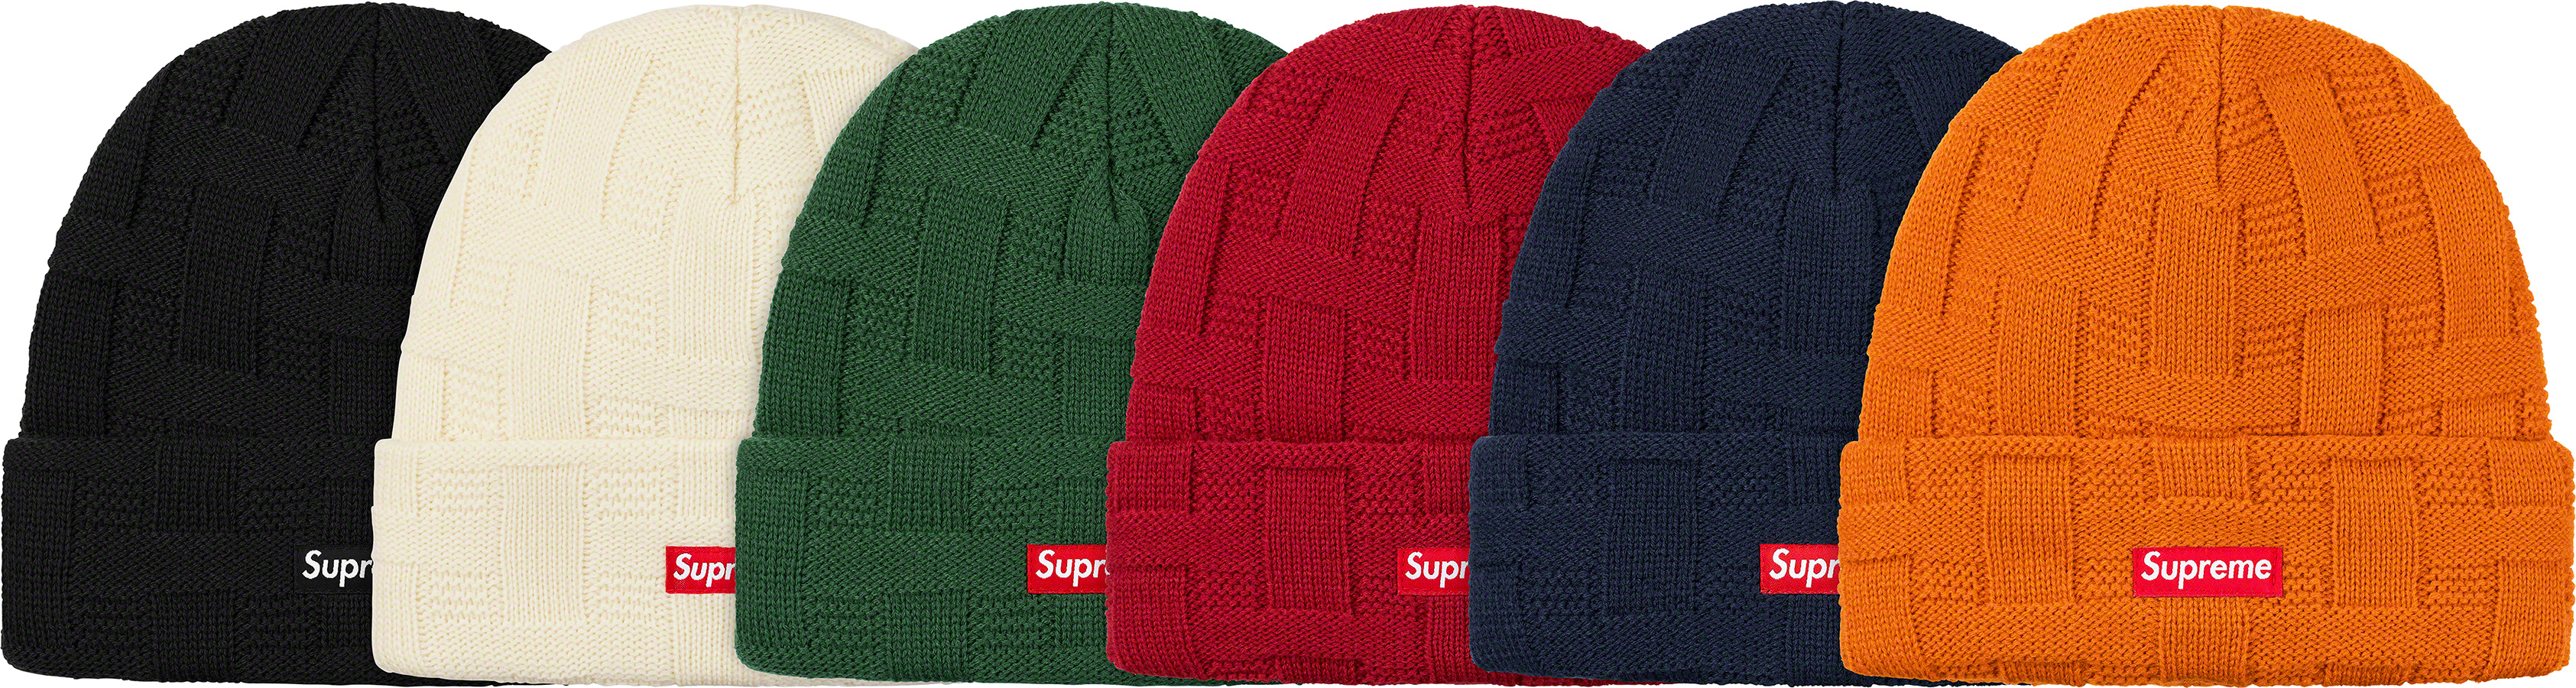 supreme-19aw-19fw-fall-winter-basket-weave-beanie